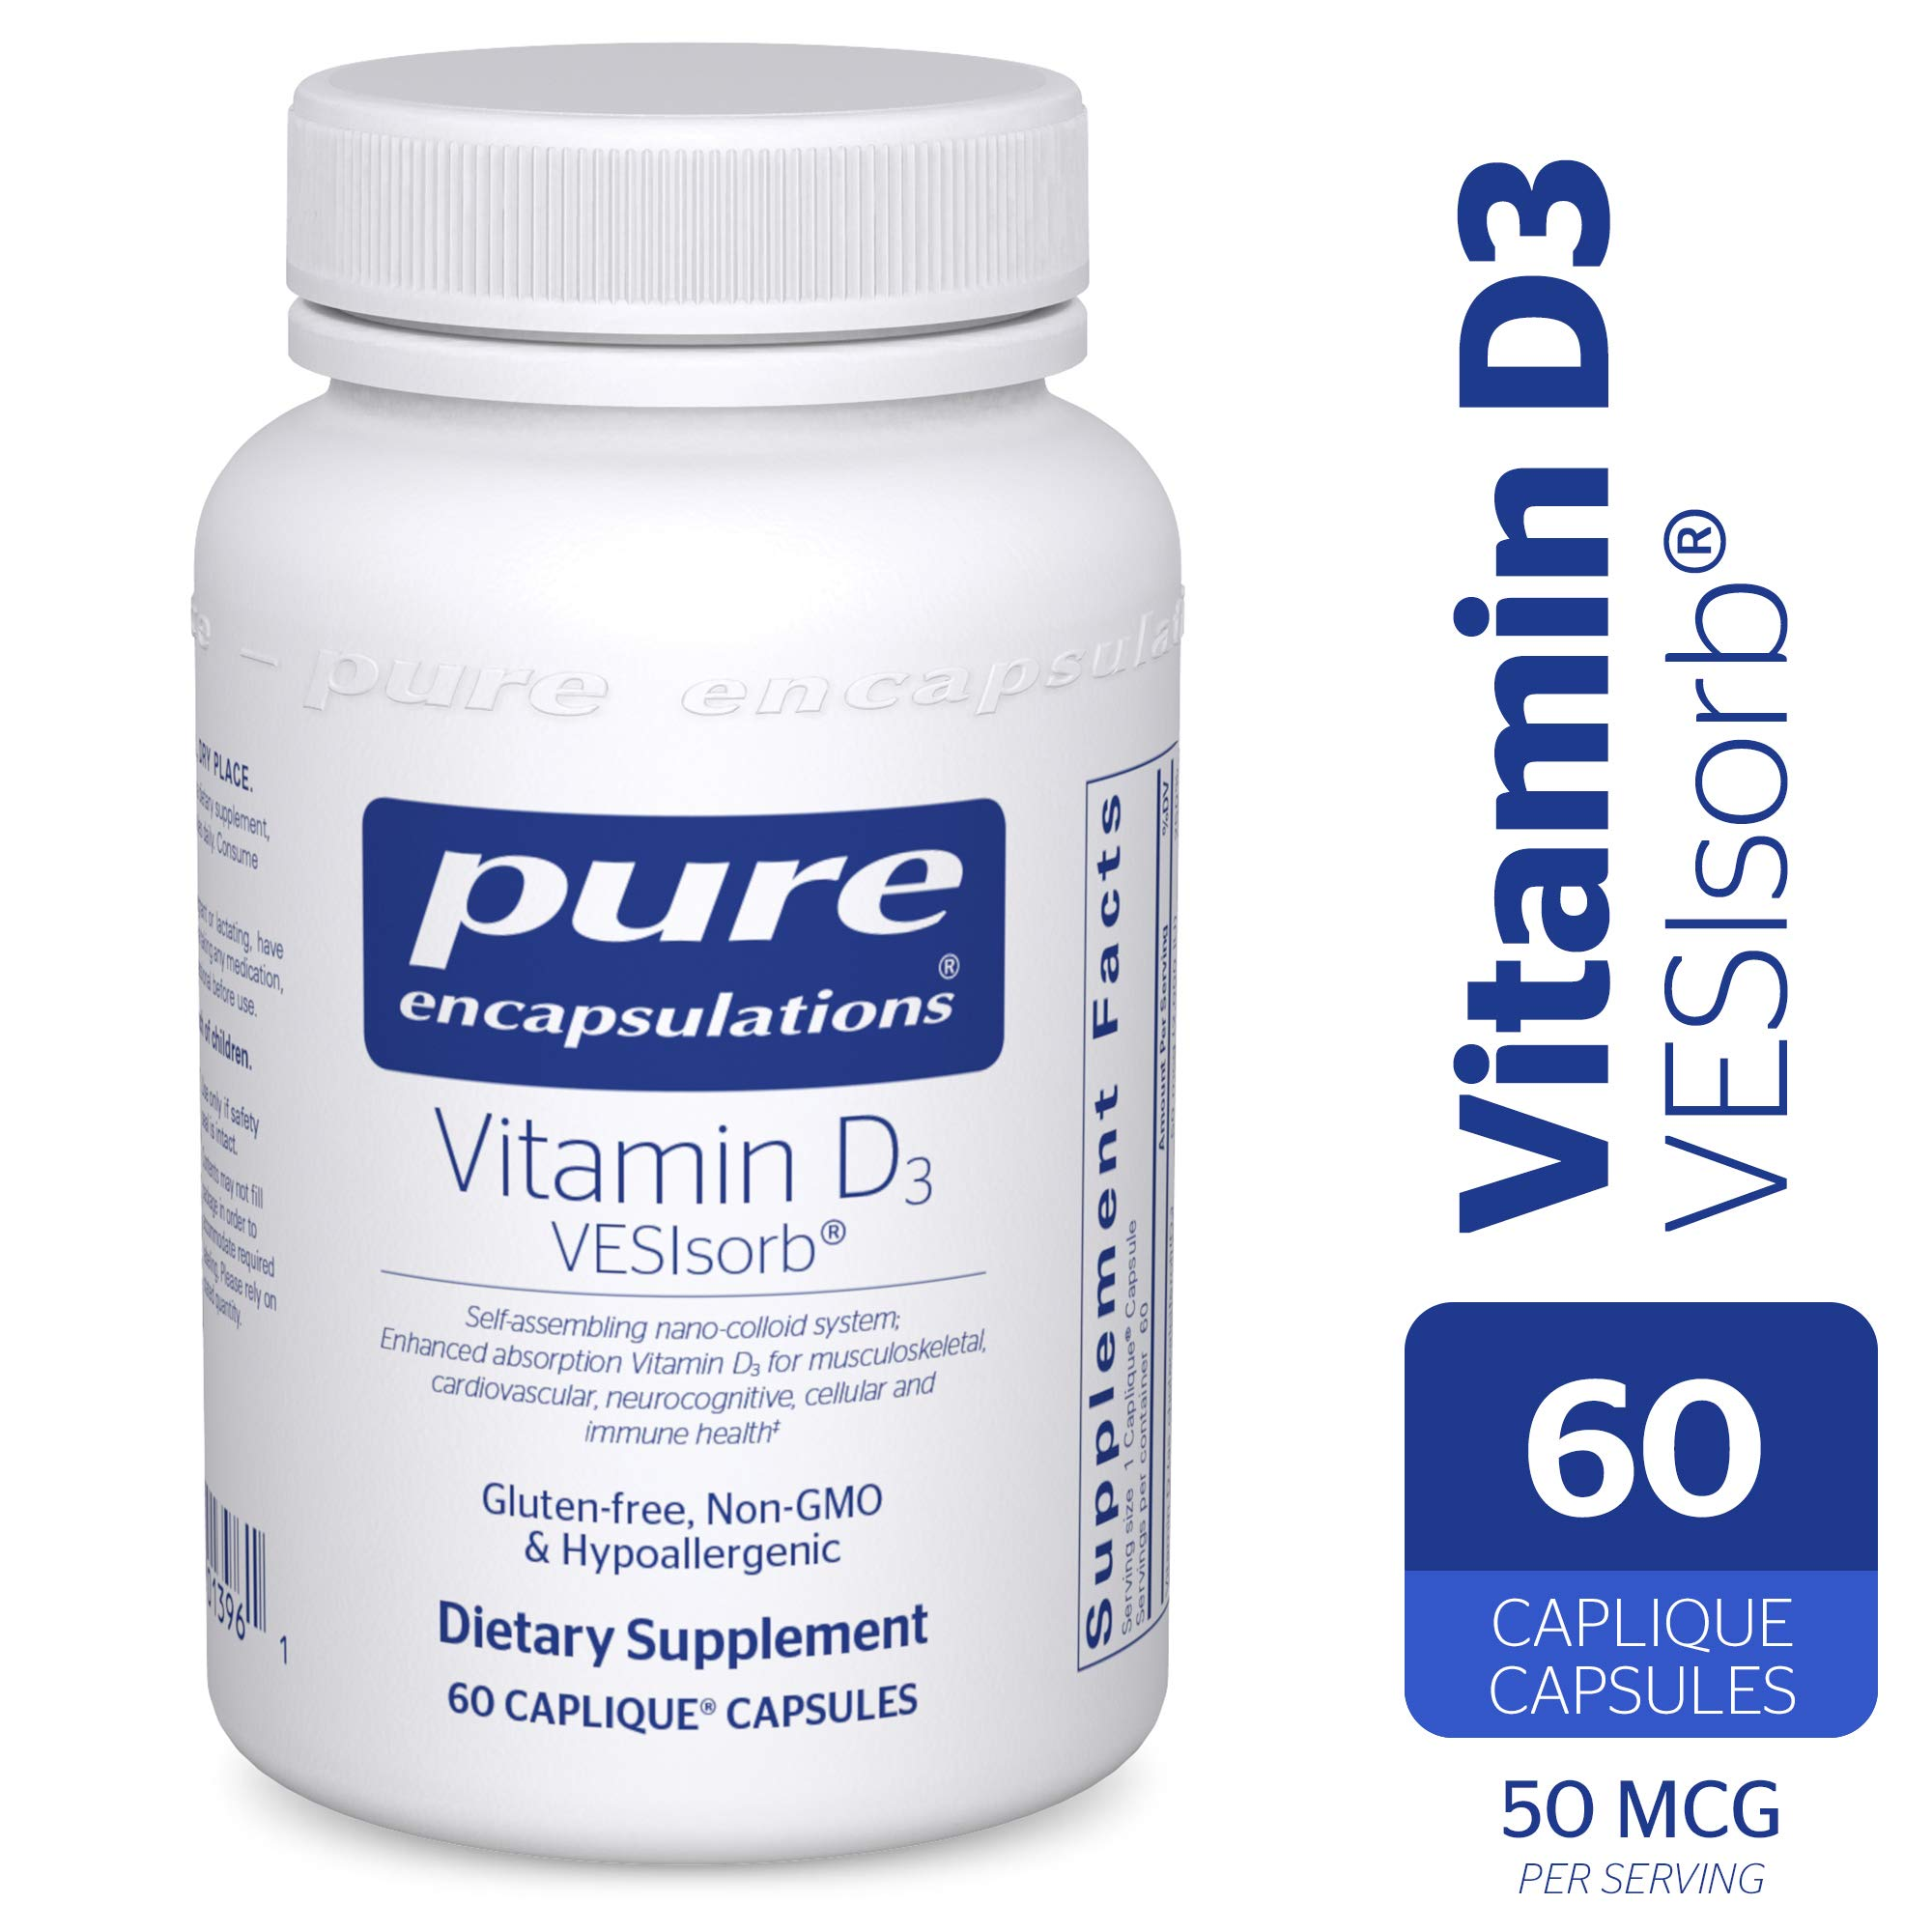 Pure Encapsulations - Vitamin D3 VESIsorb - Hypoallergenic Supplement for Enhanced Vitamin D Absorption - 60 Caplique Capsules by Pure Encapsulations (Image #1)